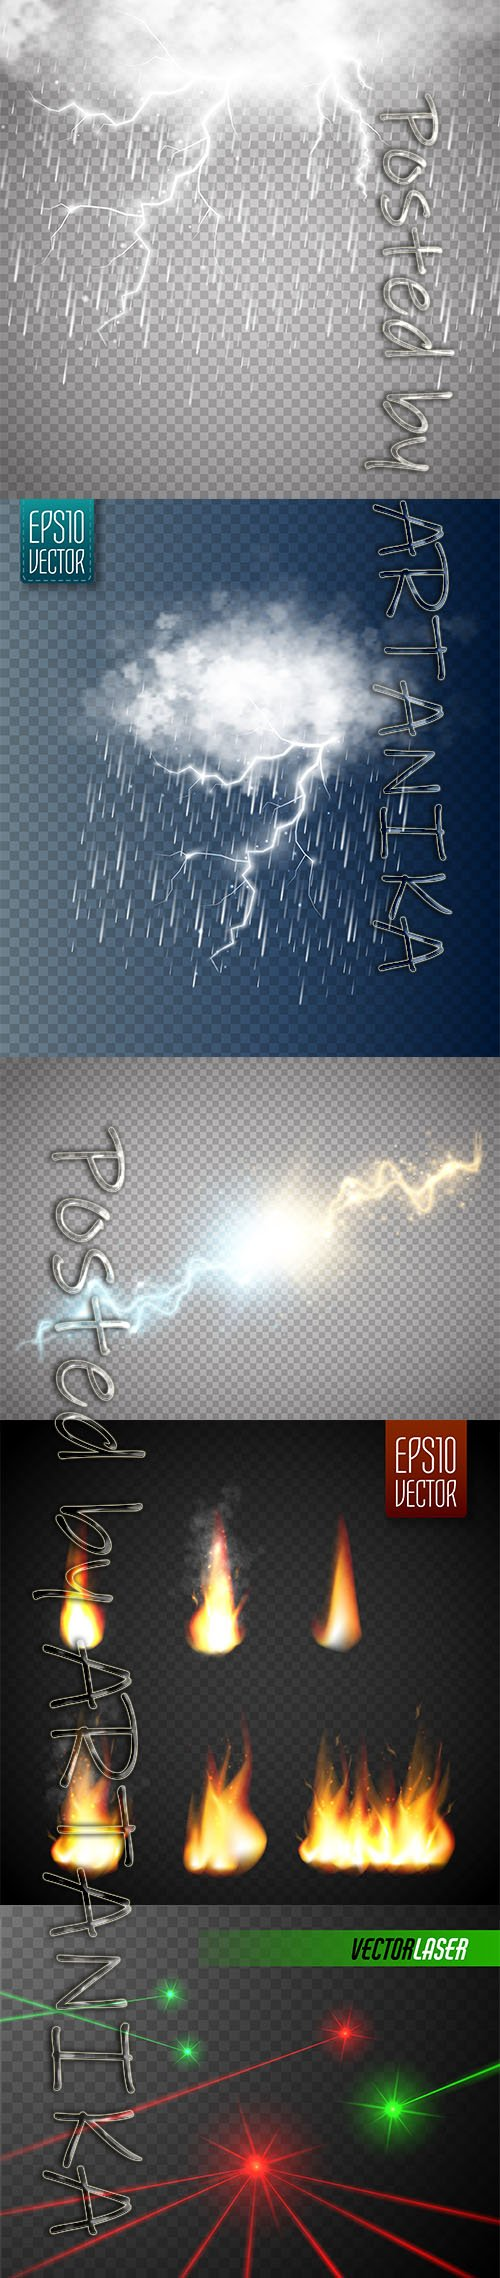 Set of Storm Lightning with Rain, Laser Beams and Fire Flames Isolated Transparent